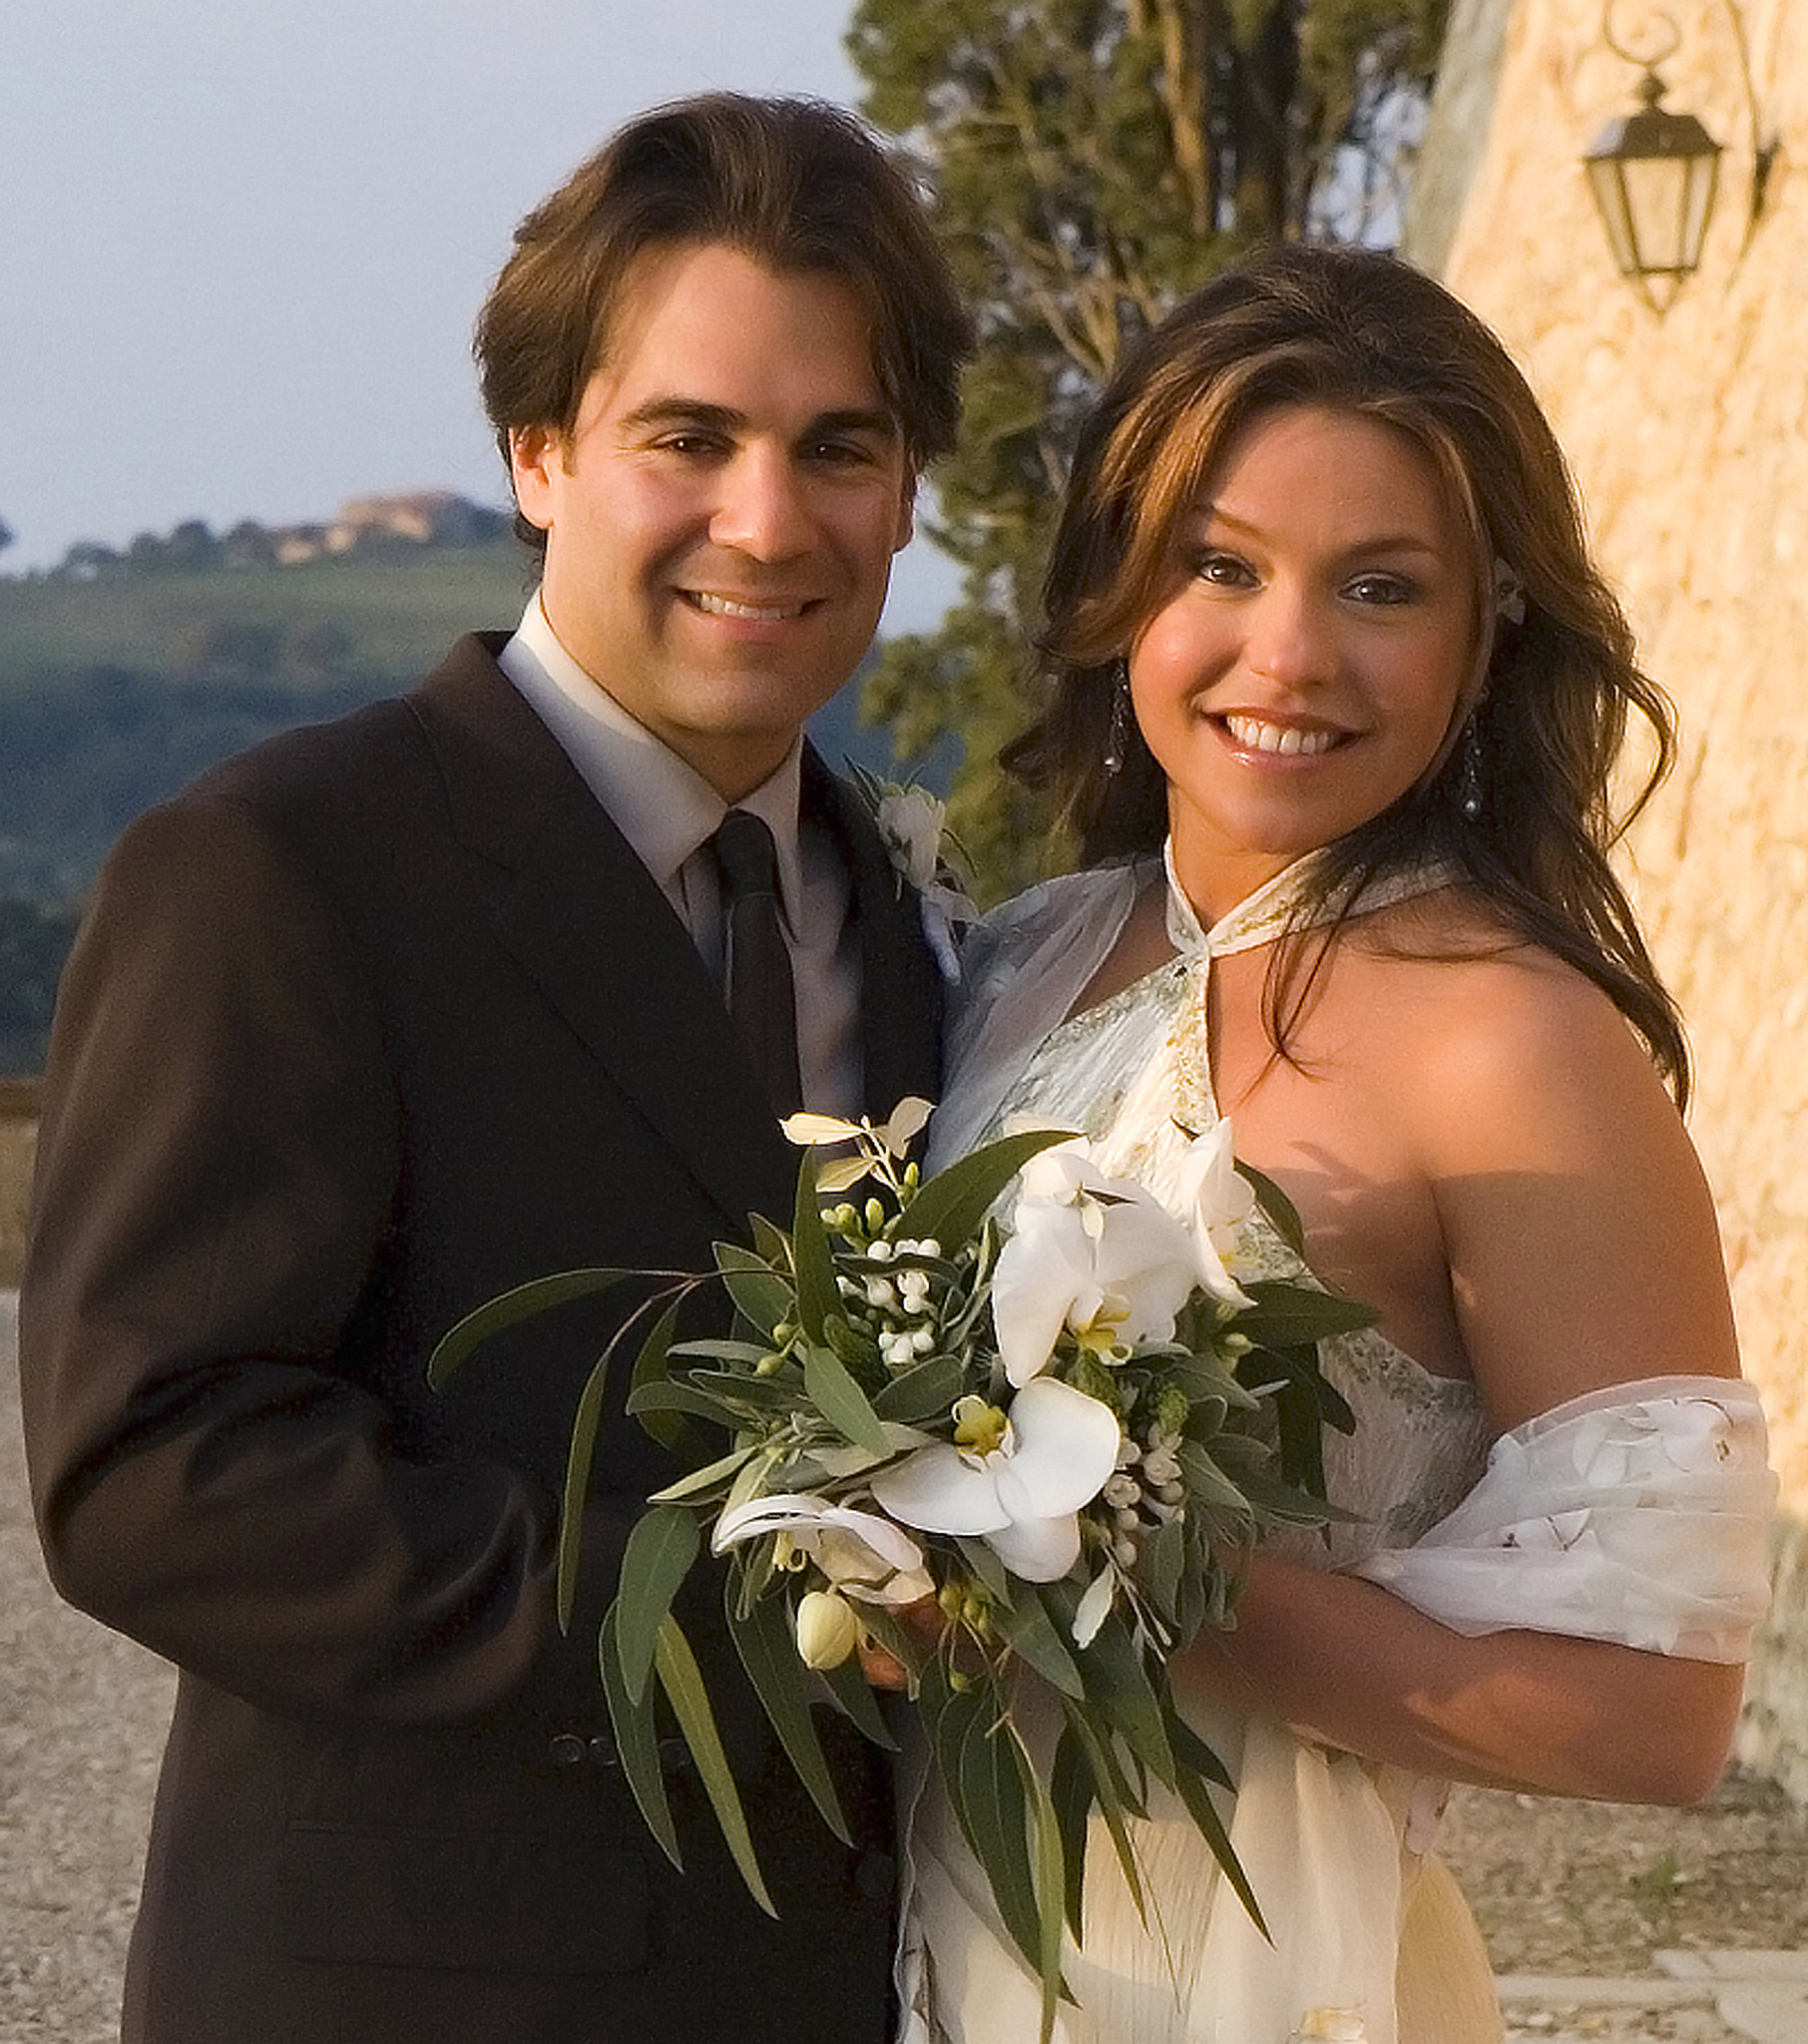 Rachael Ray wed John Cusimano in September 2005 in Italy.